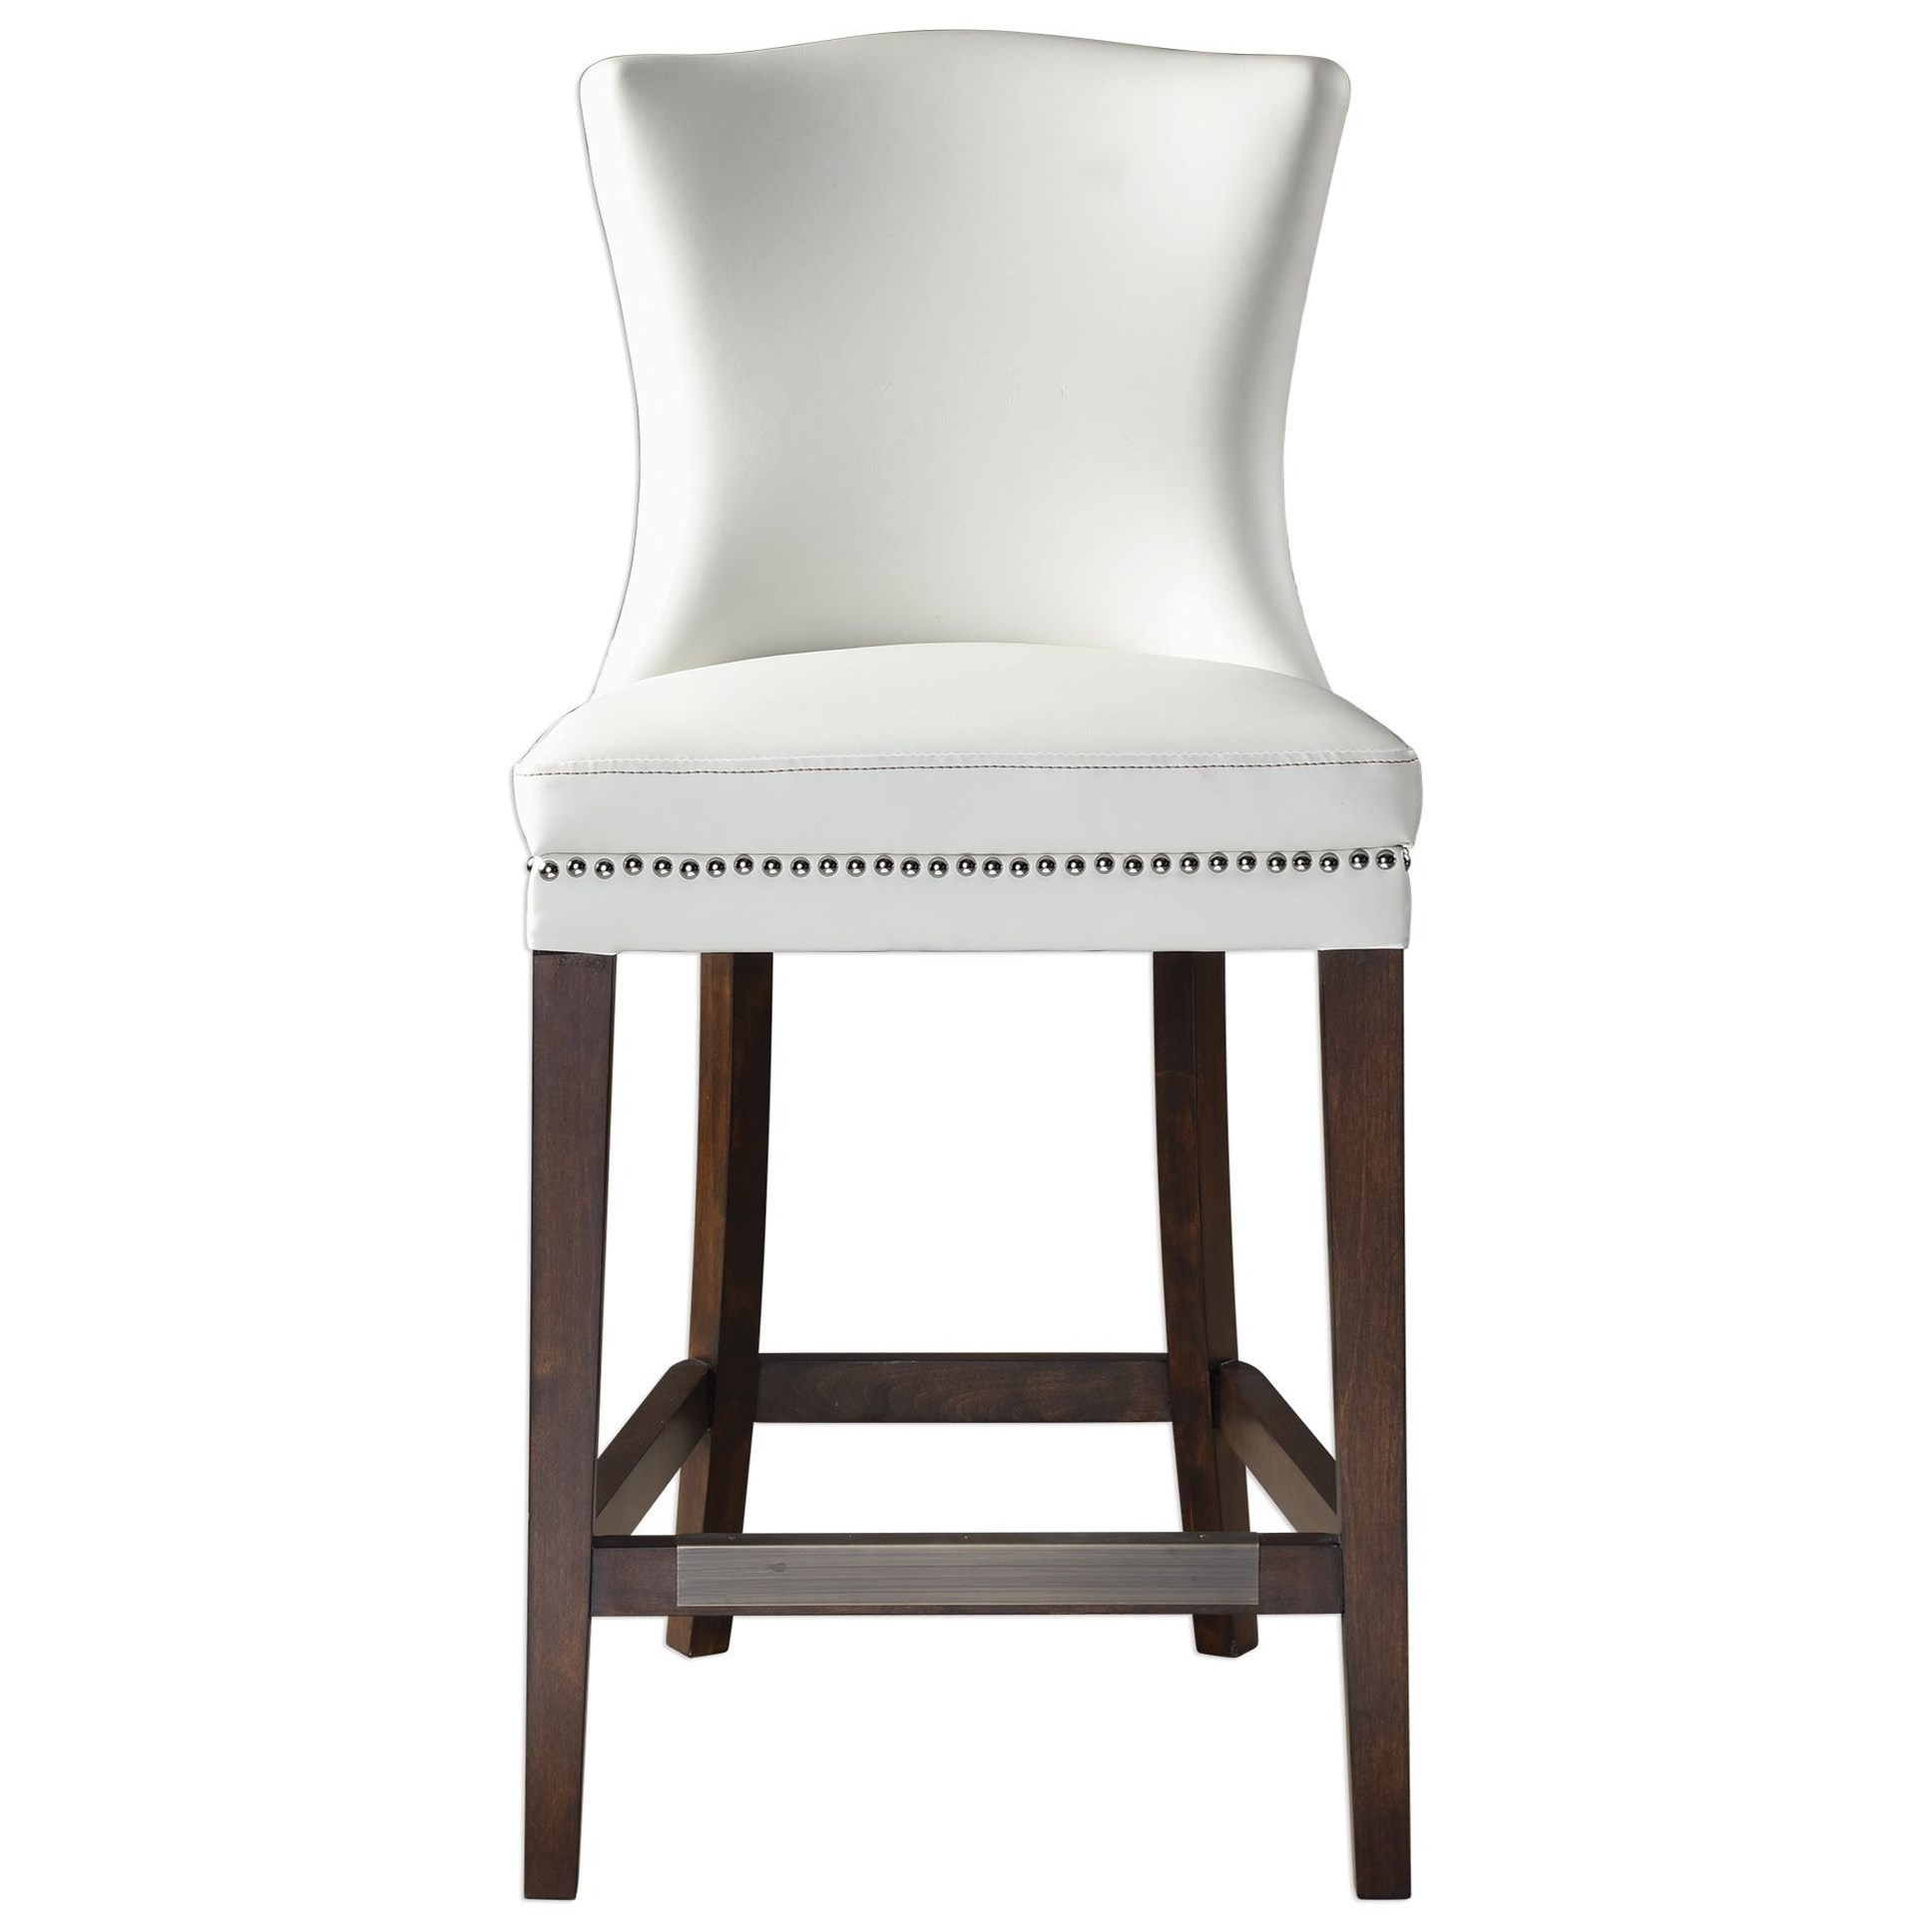 Accent Furniture - Stools Dariela White Counter Stool by Uttermost at O'Dunk & O'Bright Furniture